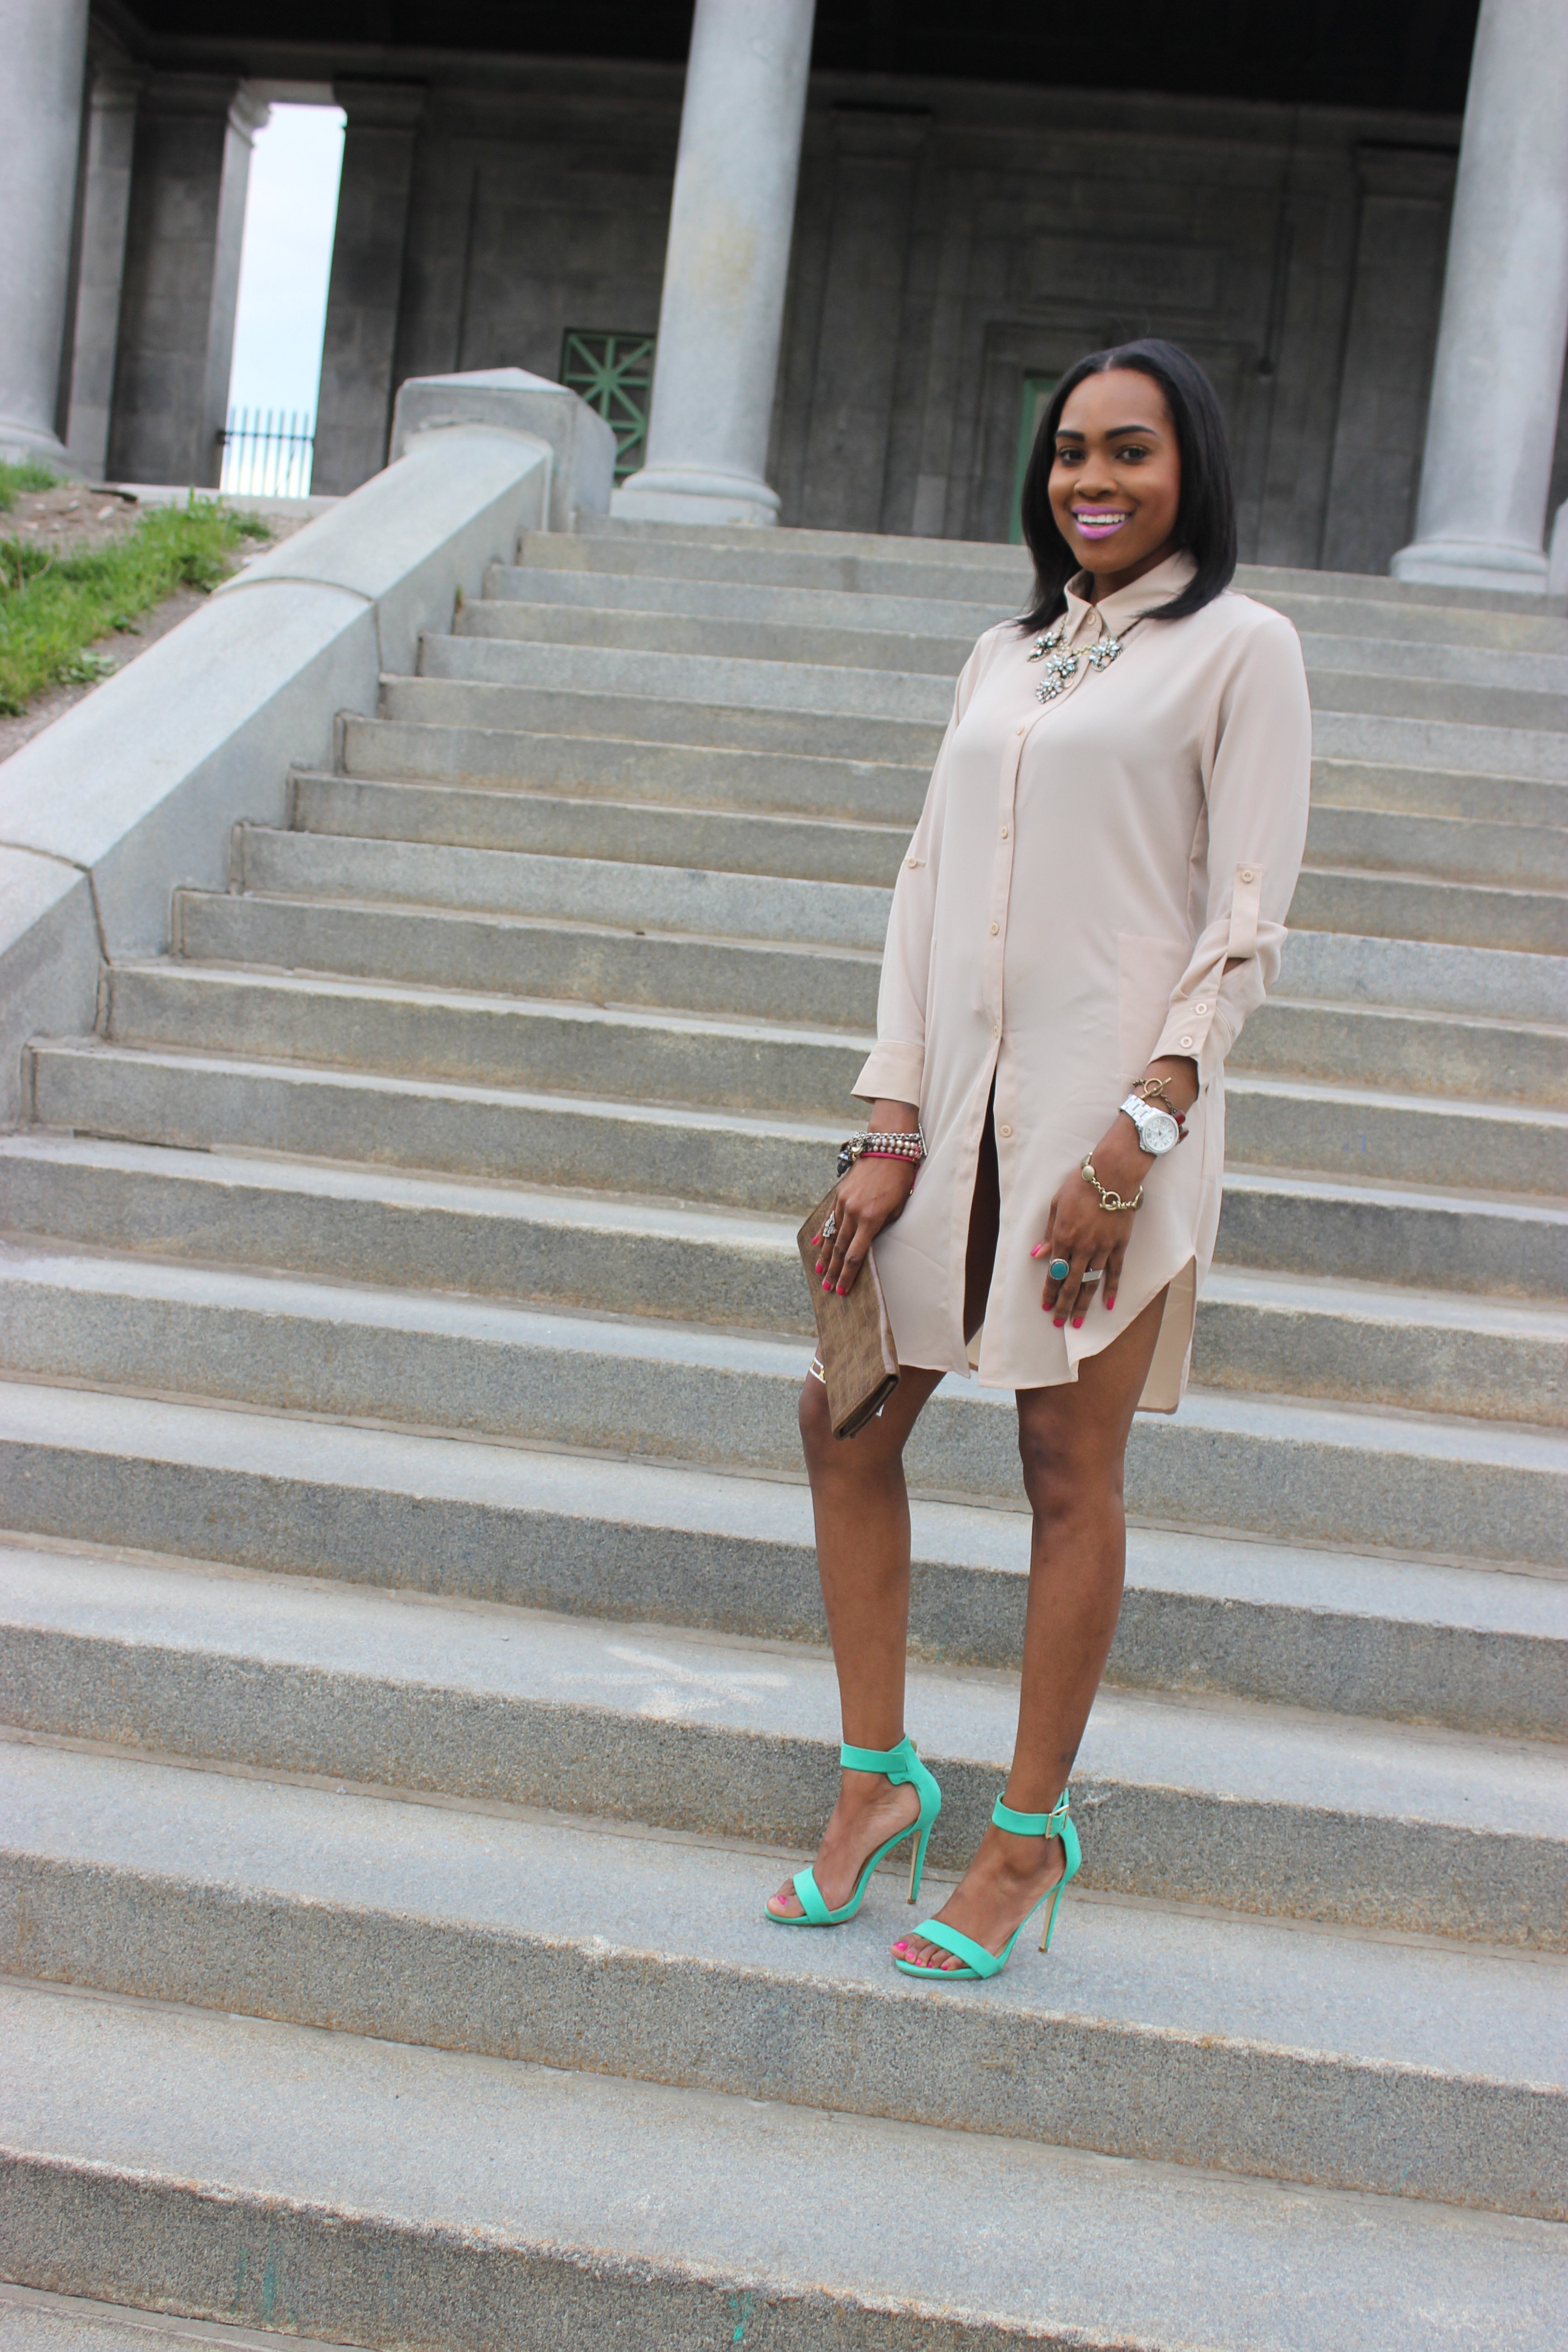 Style-Files-with-Pretty-Price-TJMaxx-Nude-Shirt-Dress-Nude-Tunic-just-fab-Paean-seamfoam-mint-green-ankle-strap-sandals-forever-21-distressed-cut-off-shorts-Pink-turban-justfab-Taesha-leopard-print-lace-up-heel-sandals-6